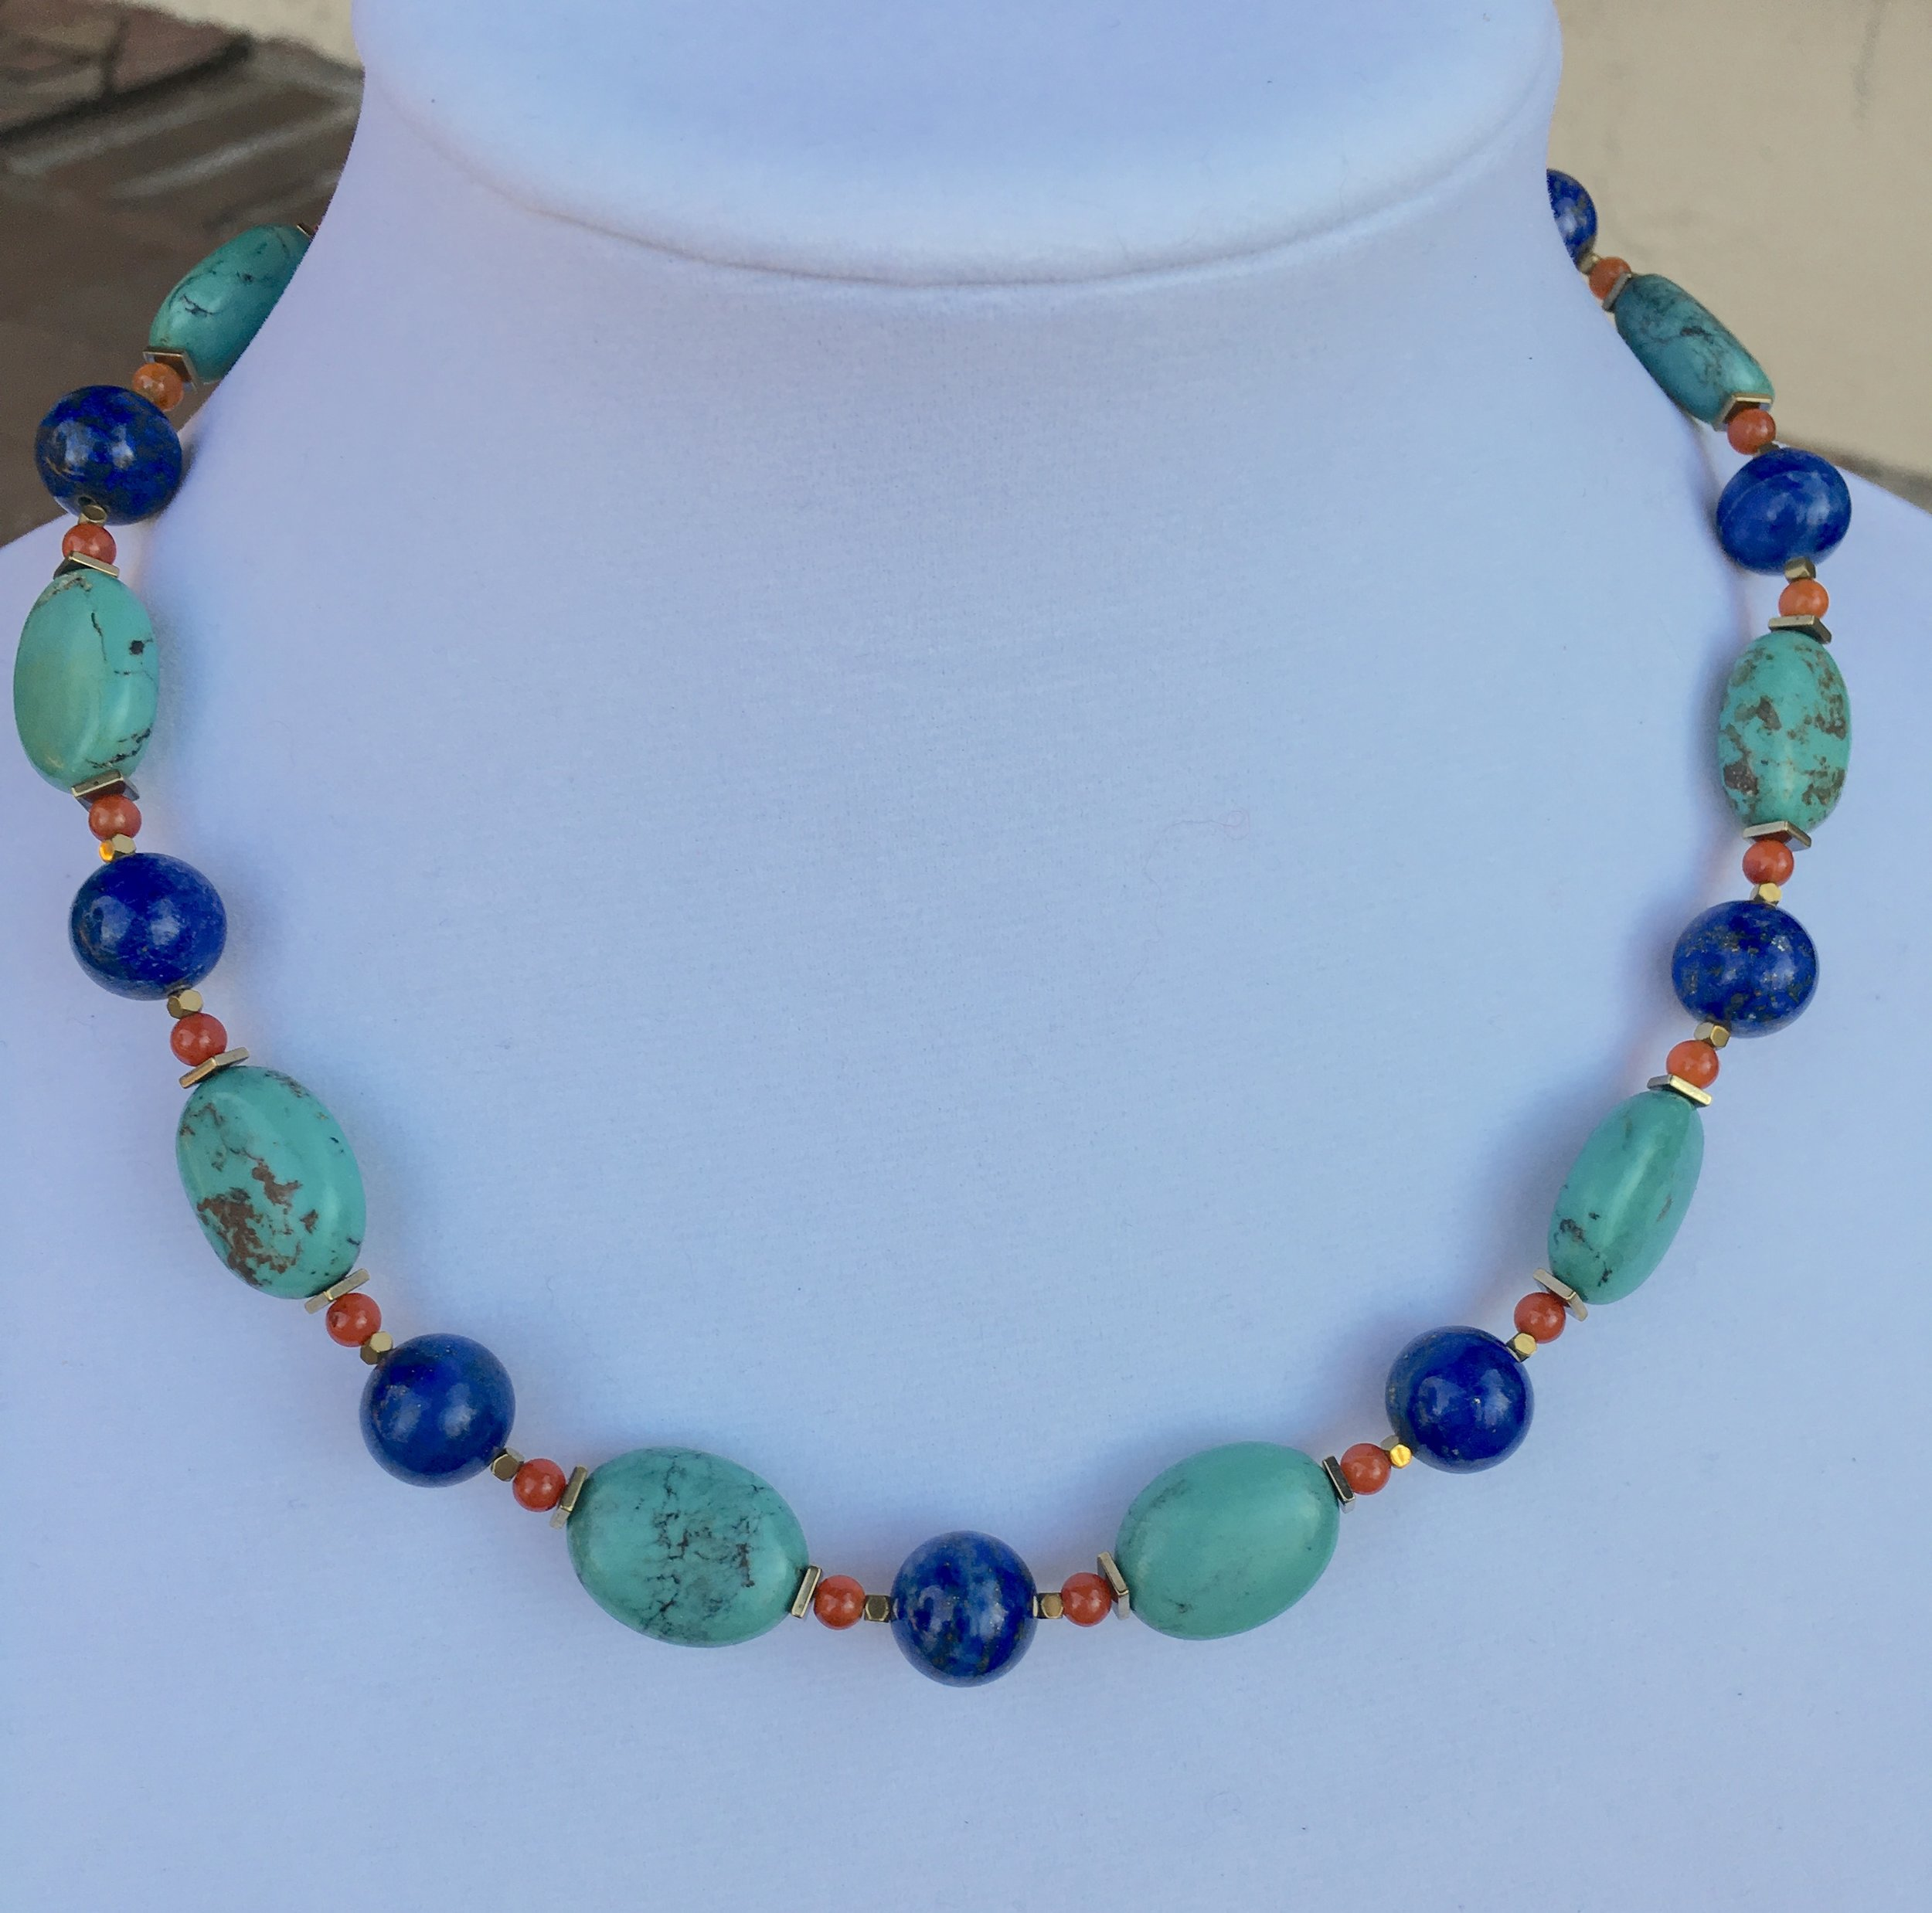 lapis, turquoise & carnelian egyptian color motif NECKLACE  12mm lapis lazuli round beads,15 x 20 mm turquoise oval beads,5 mm carnelian round beads.Gold filled clasp. 19 in. $500